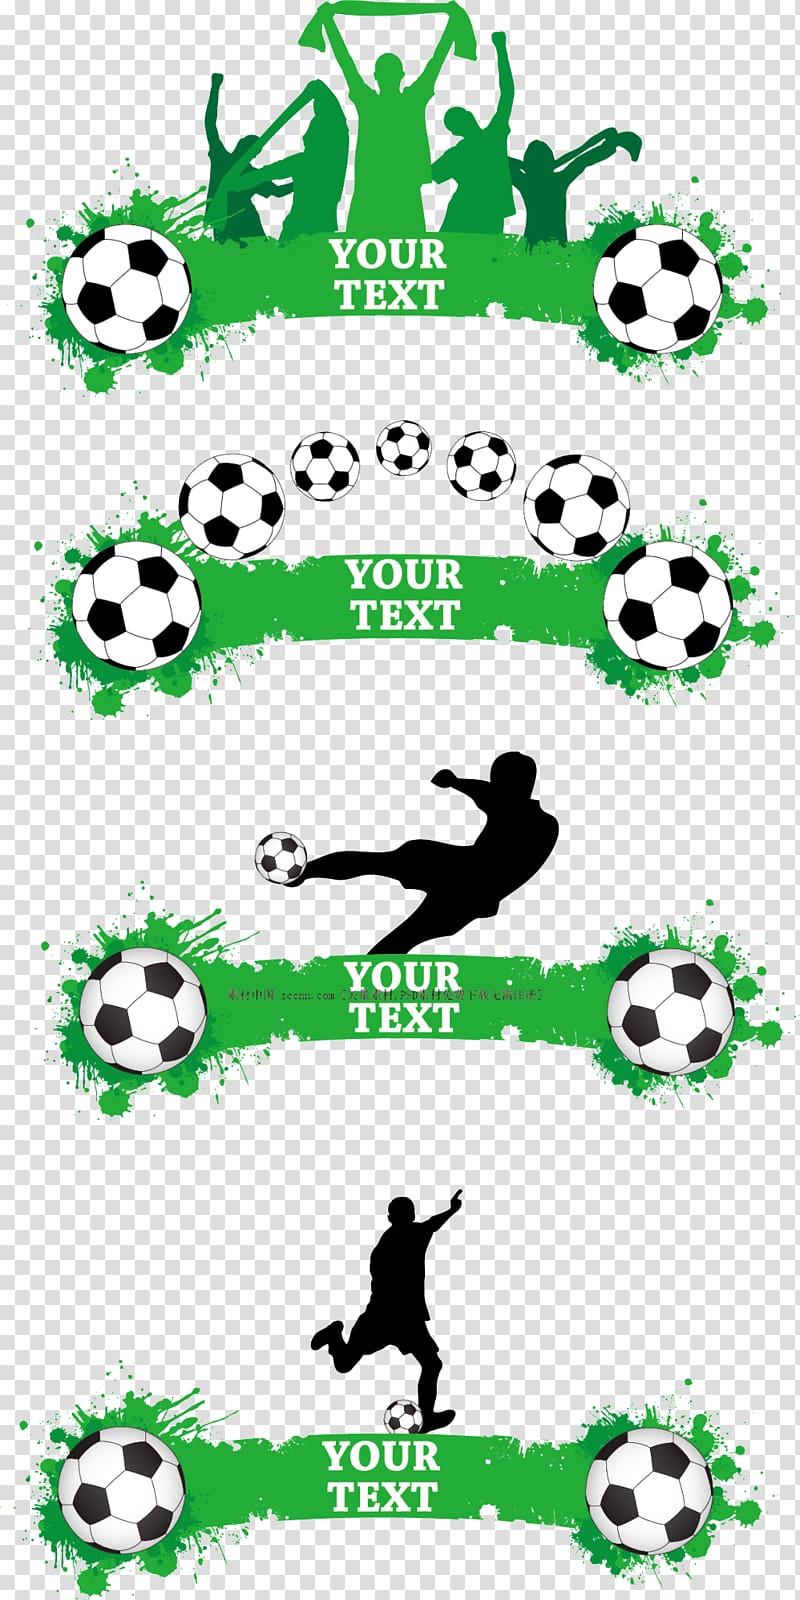 Football theme clipart jpg freeuse library Football Banner, Football theme banner , soccer ball illustration ... jpg freeuse library